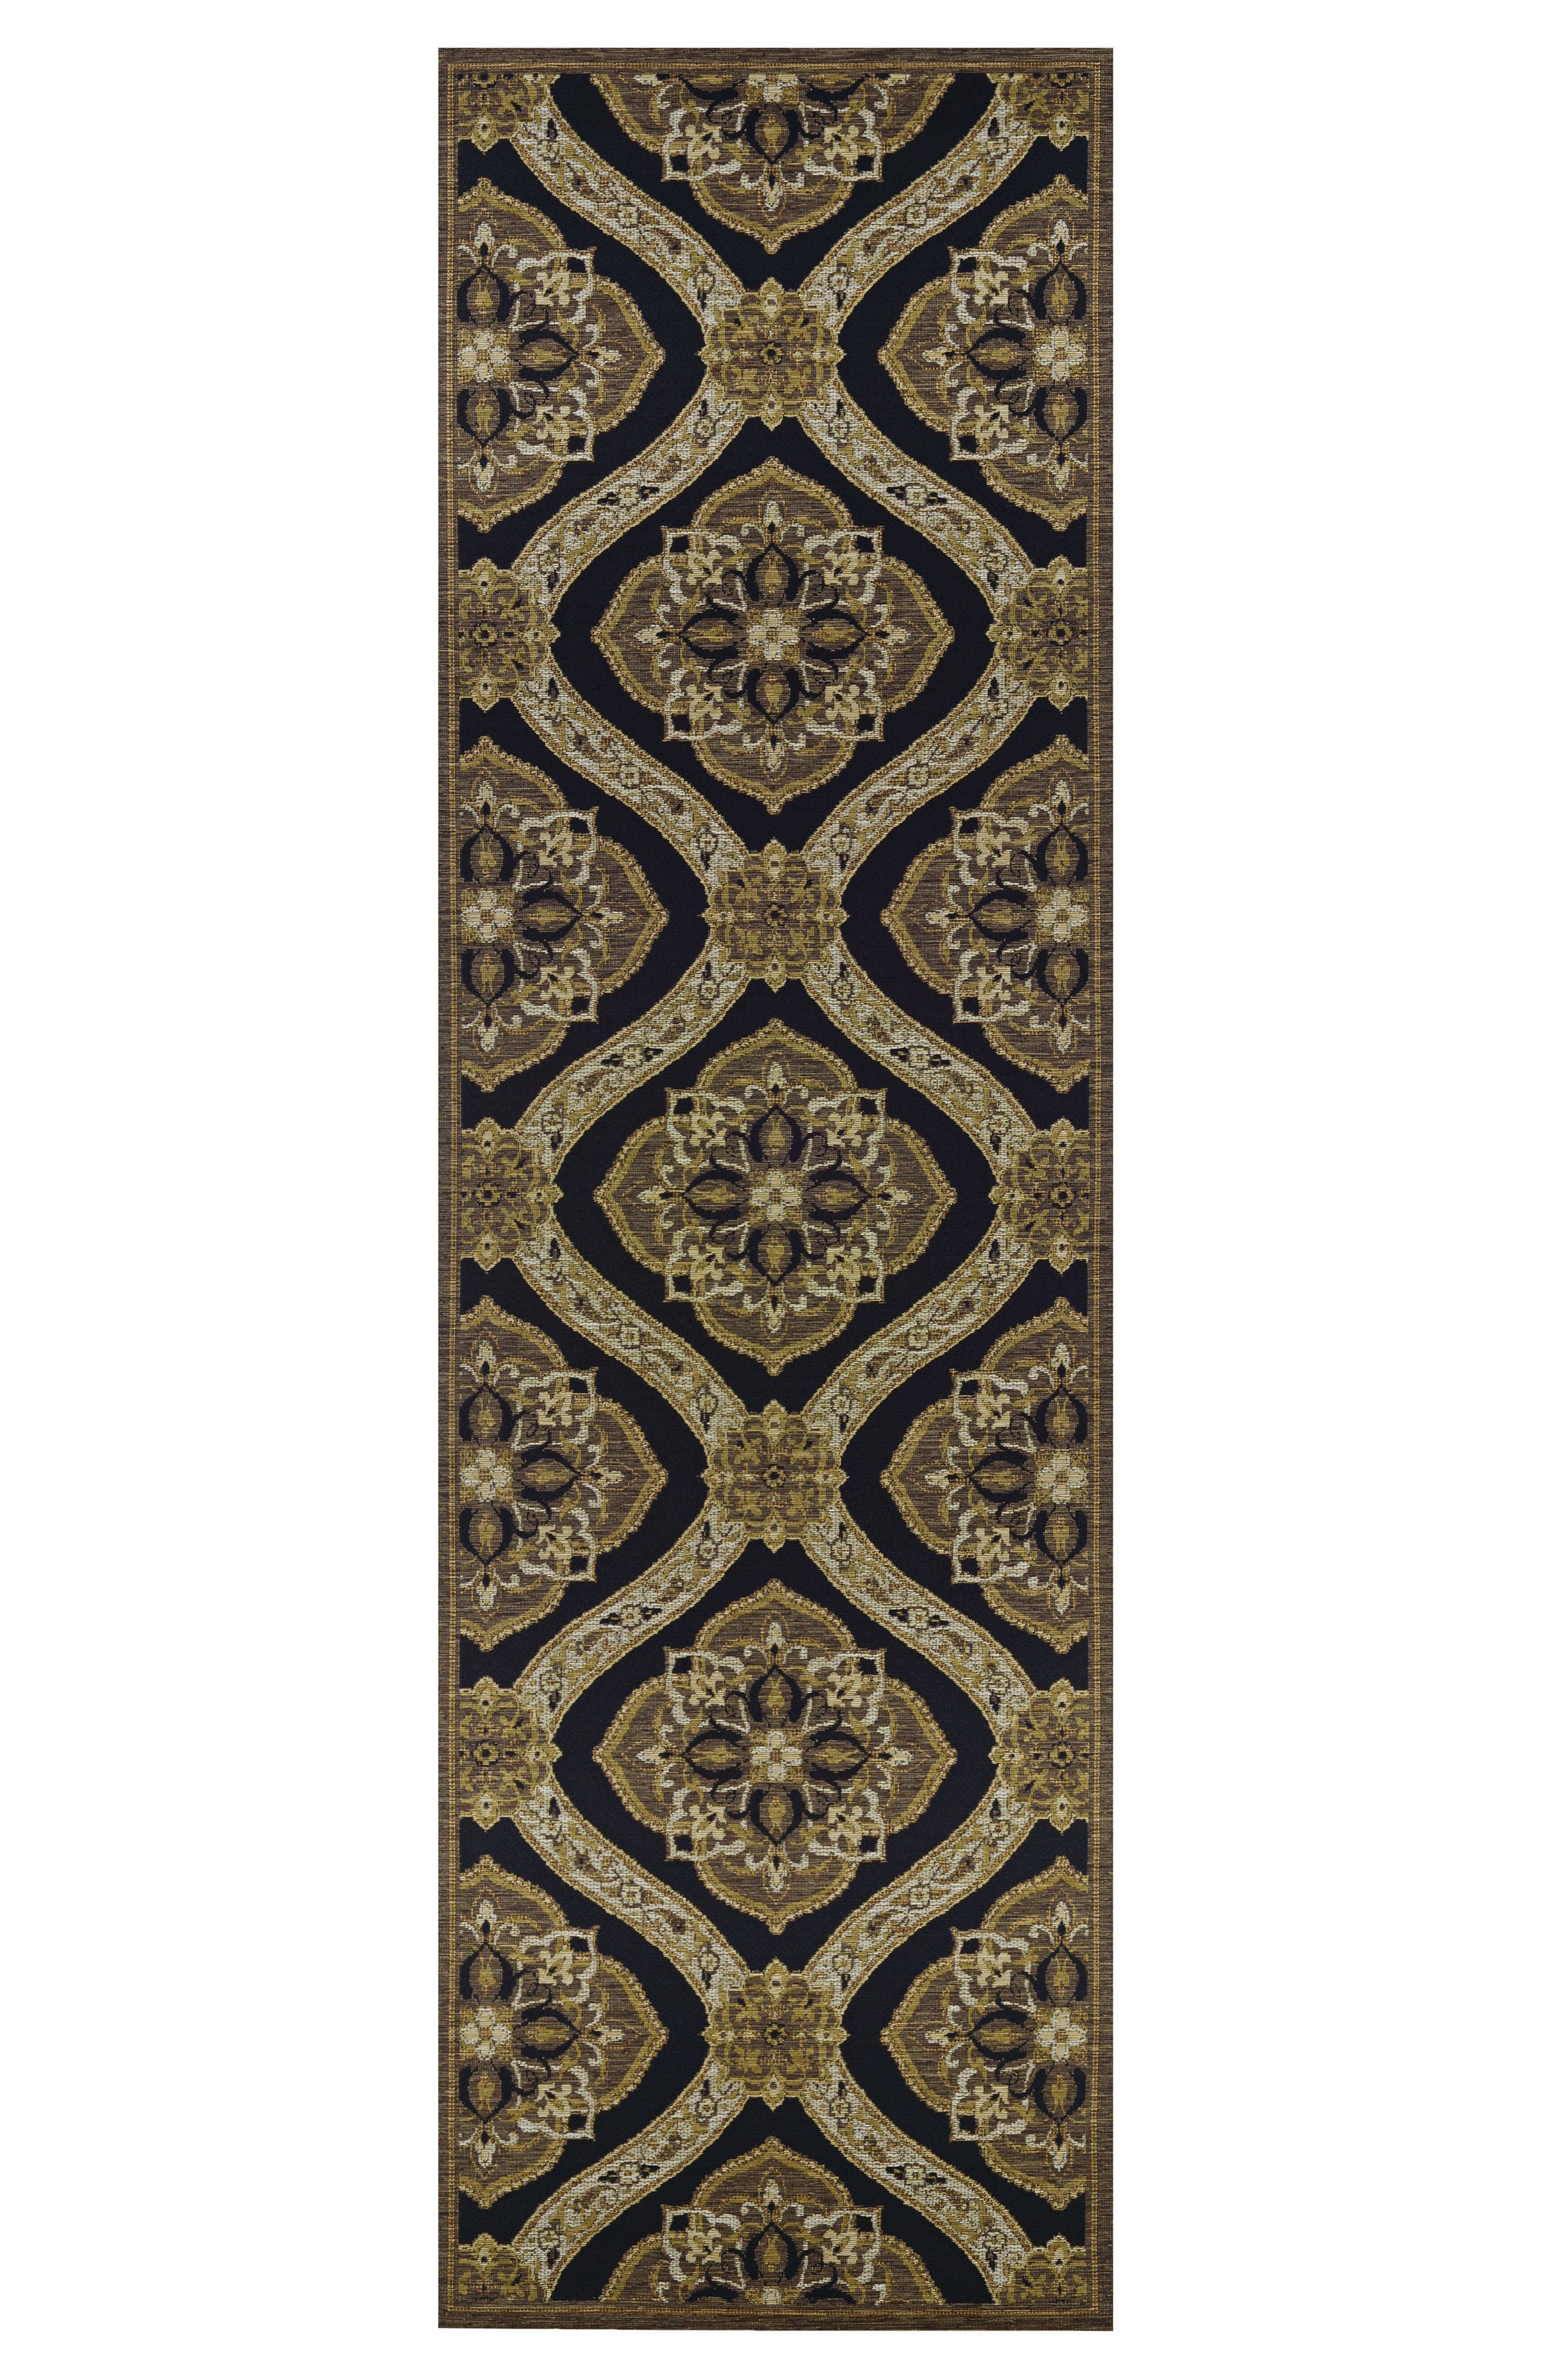 Napoli Indoor/Outdoor Rug,                             Alternate thumbnail 2, color,                             Black/ Gold